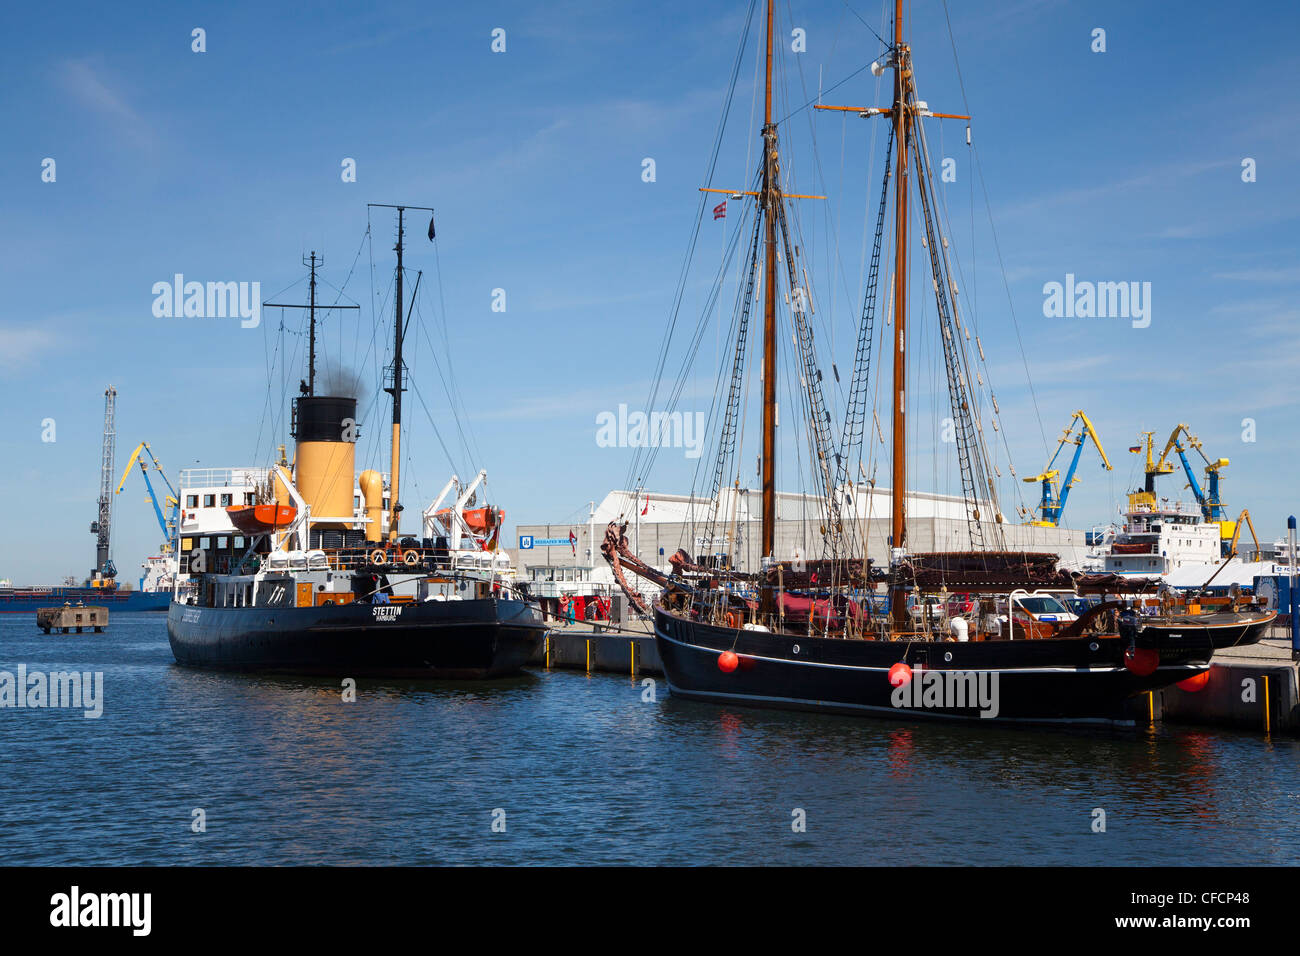 Ships in the harbour, Wismar, Baltic Sea, Mecklenburg Western-Pomerania, Germany - Stock Image